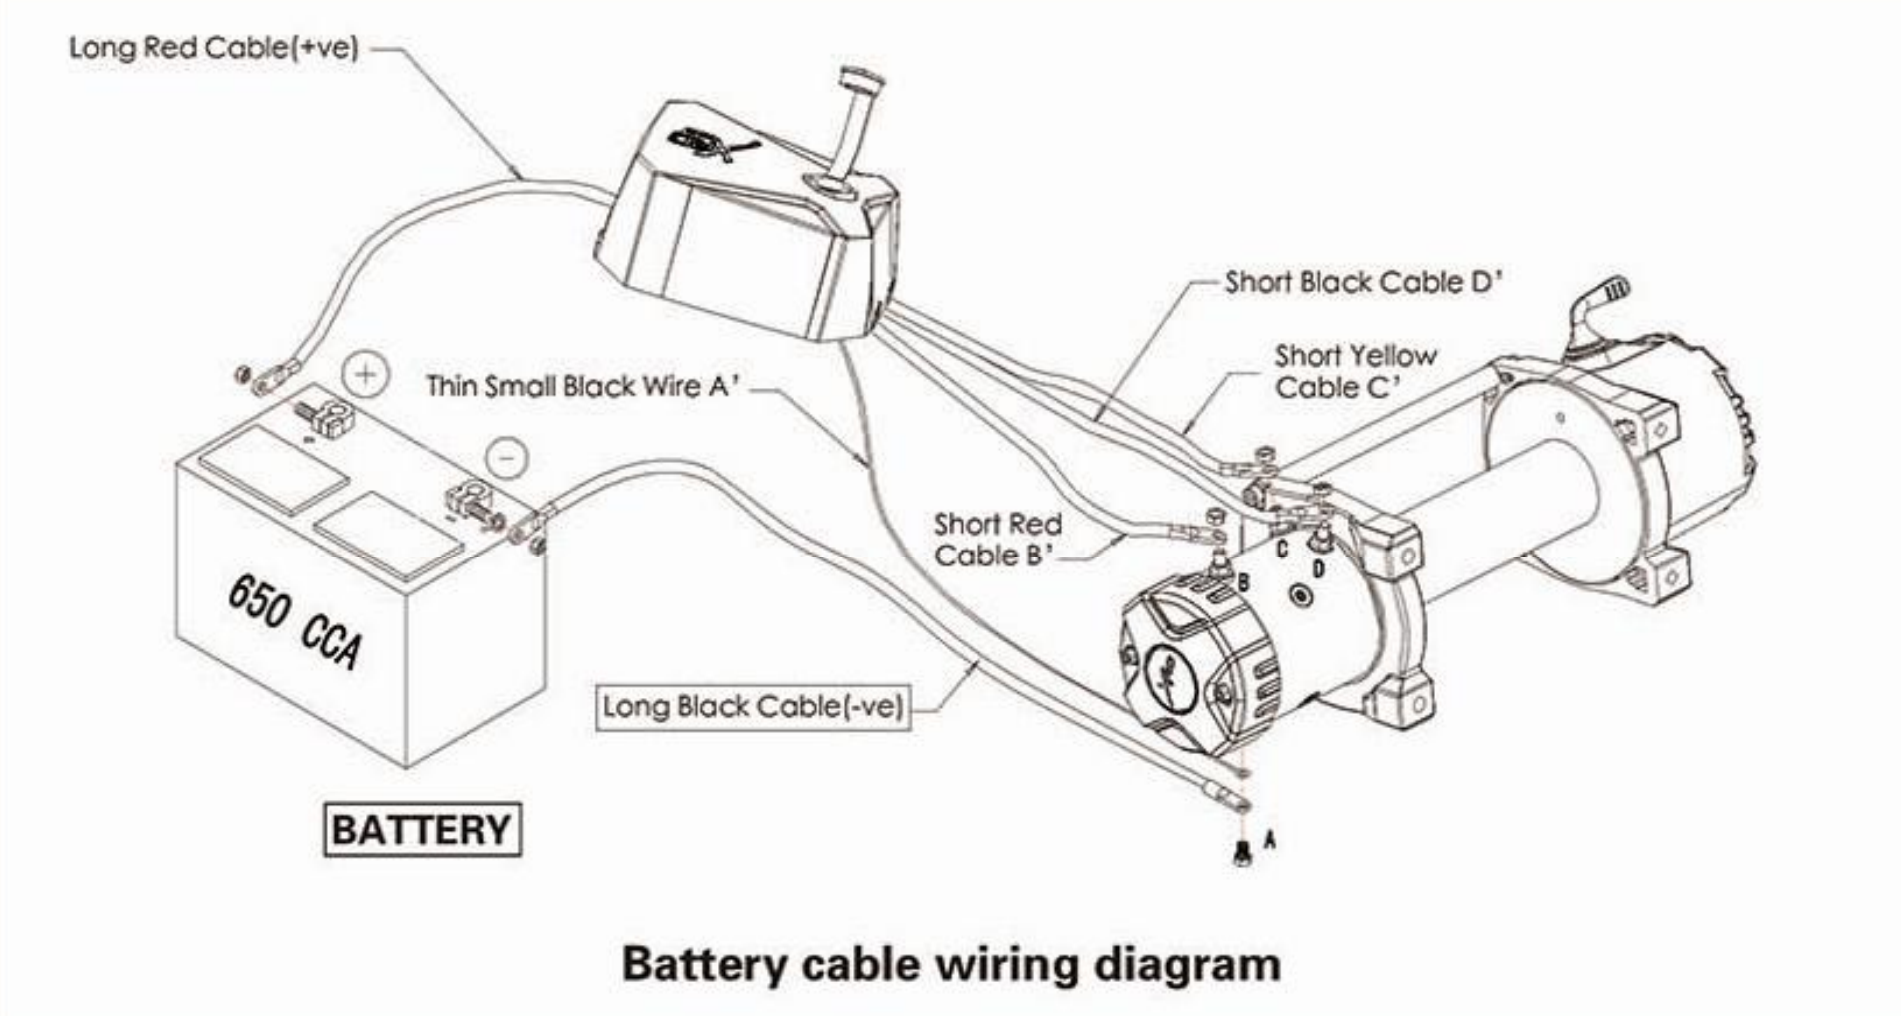 DIAGRAM] Smittybilt Xrc Winch Wiring Diagram FULL Version HD Quality Wiring  Diagram - ATQR10FUSE27.LINEACERAMICAPARMA.ITlineaceramicaparma.it